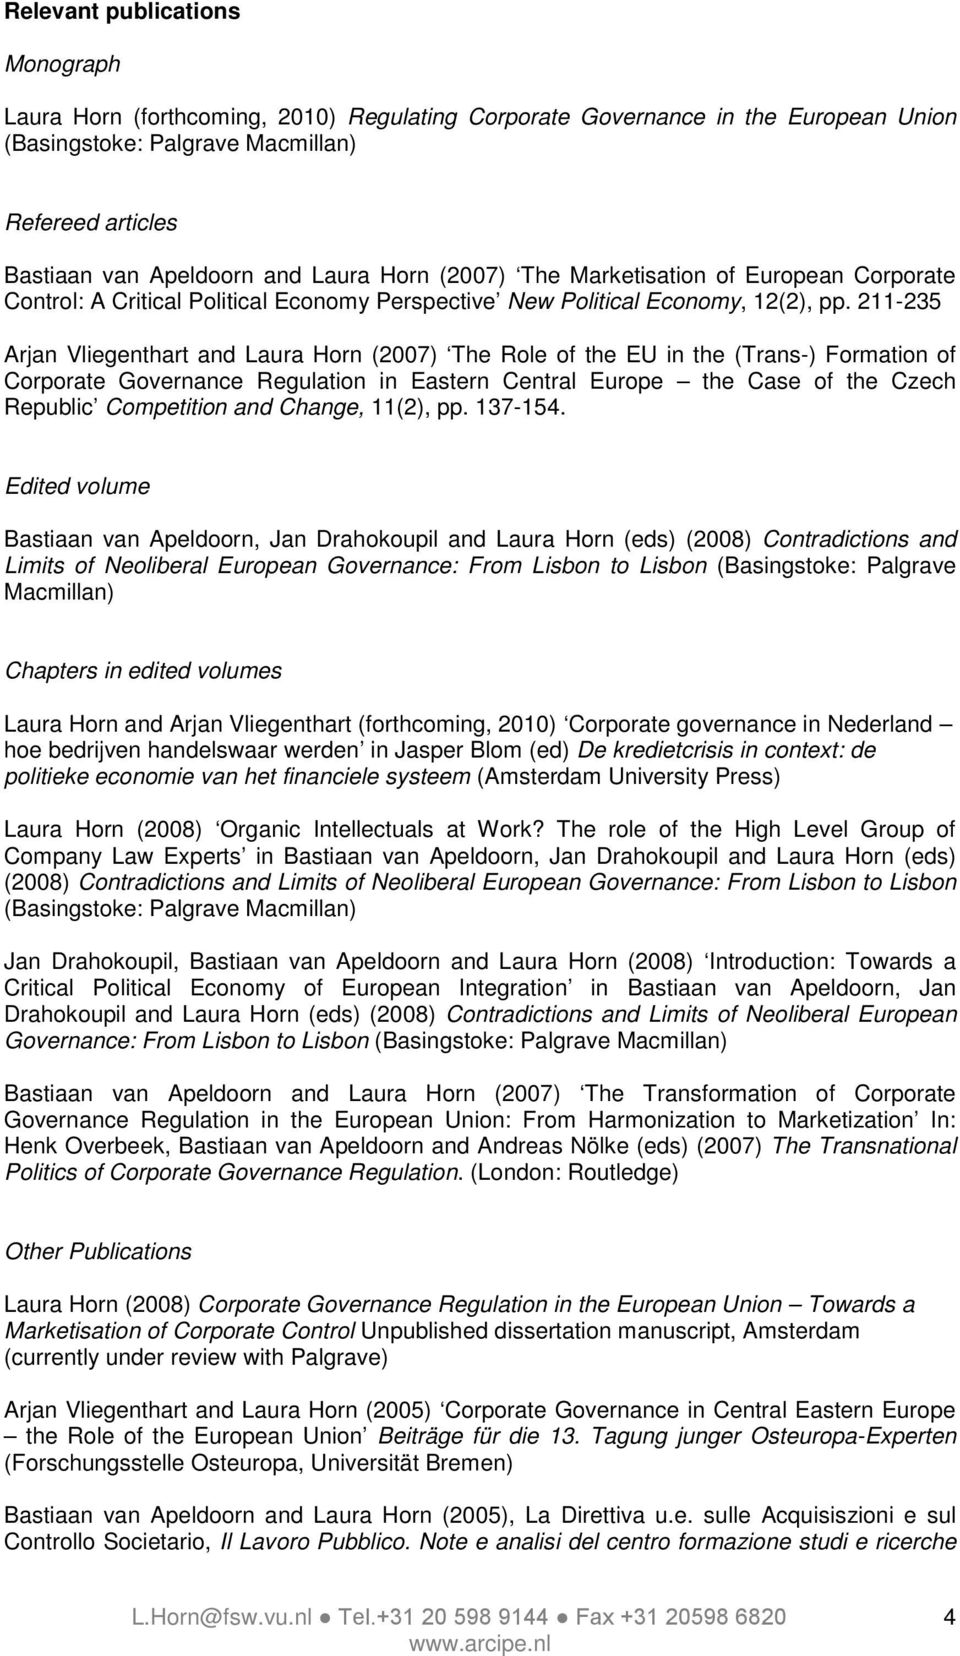 211-235 Arjan Vliegenthart and Laura Horn (2007) The Role of the EU in the (Trans-) Formation of Corporate Governance Regulation in Eastern Central Europe the Case of the Czech Republic Competition